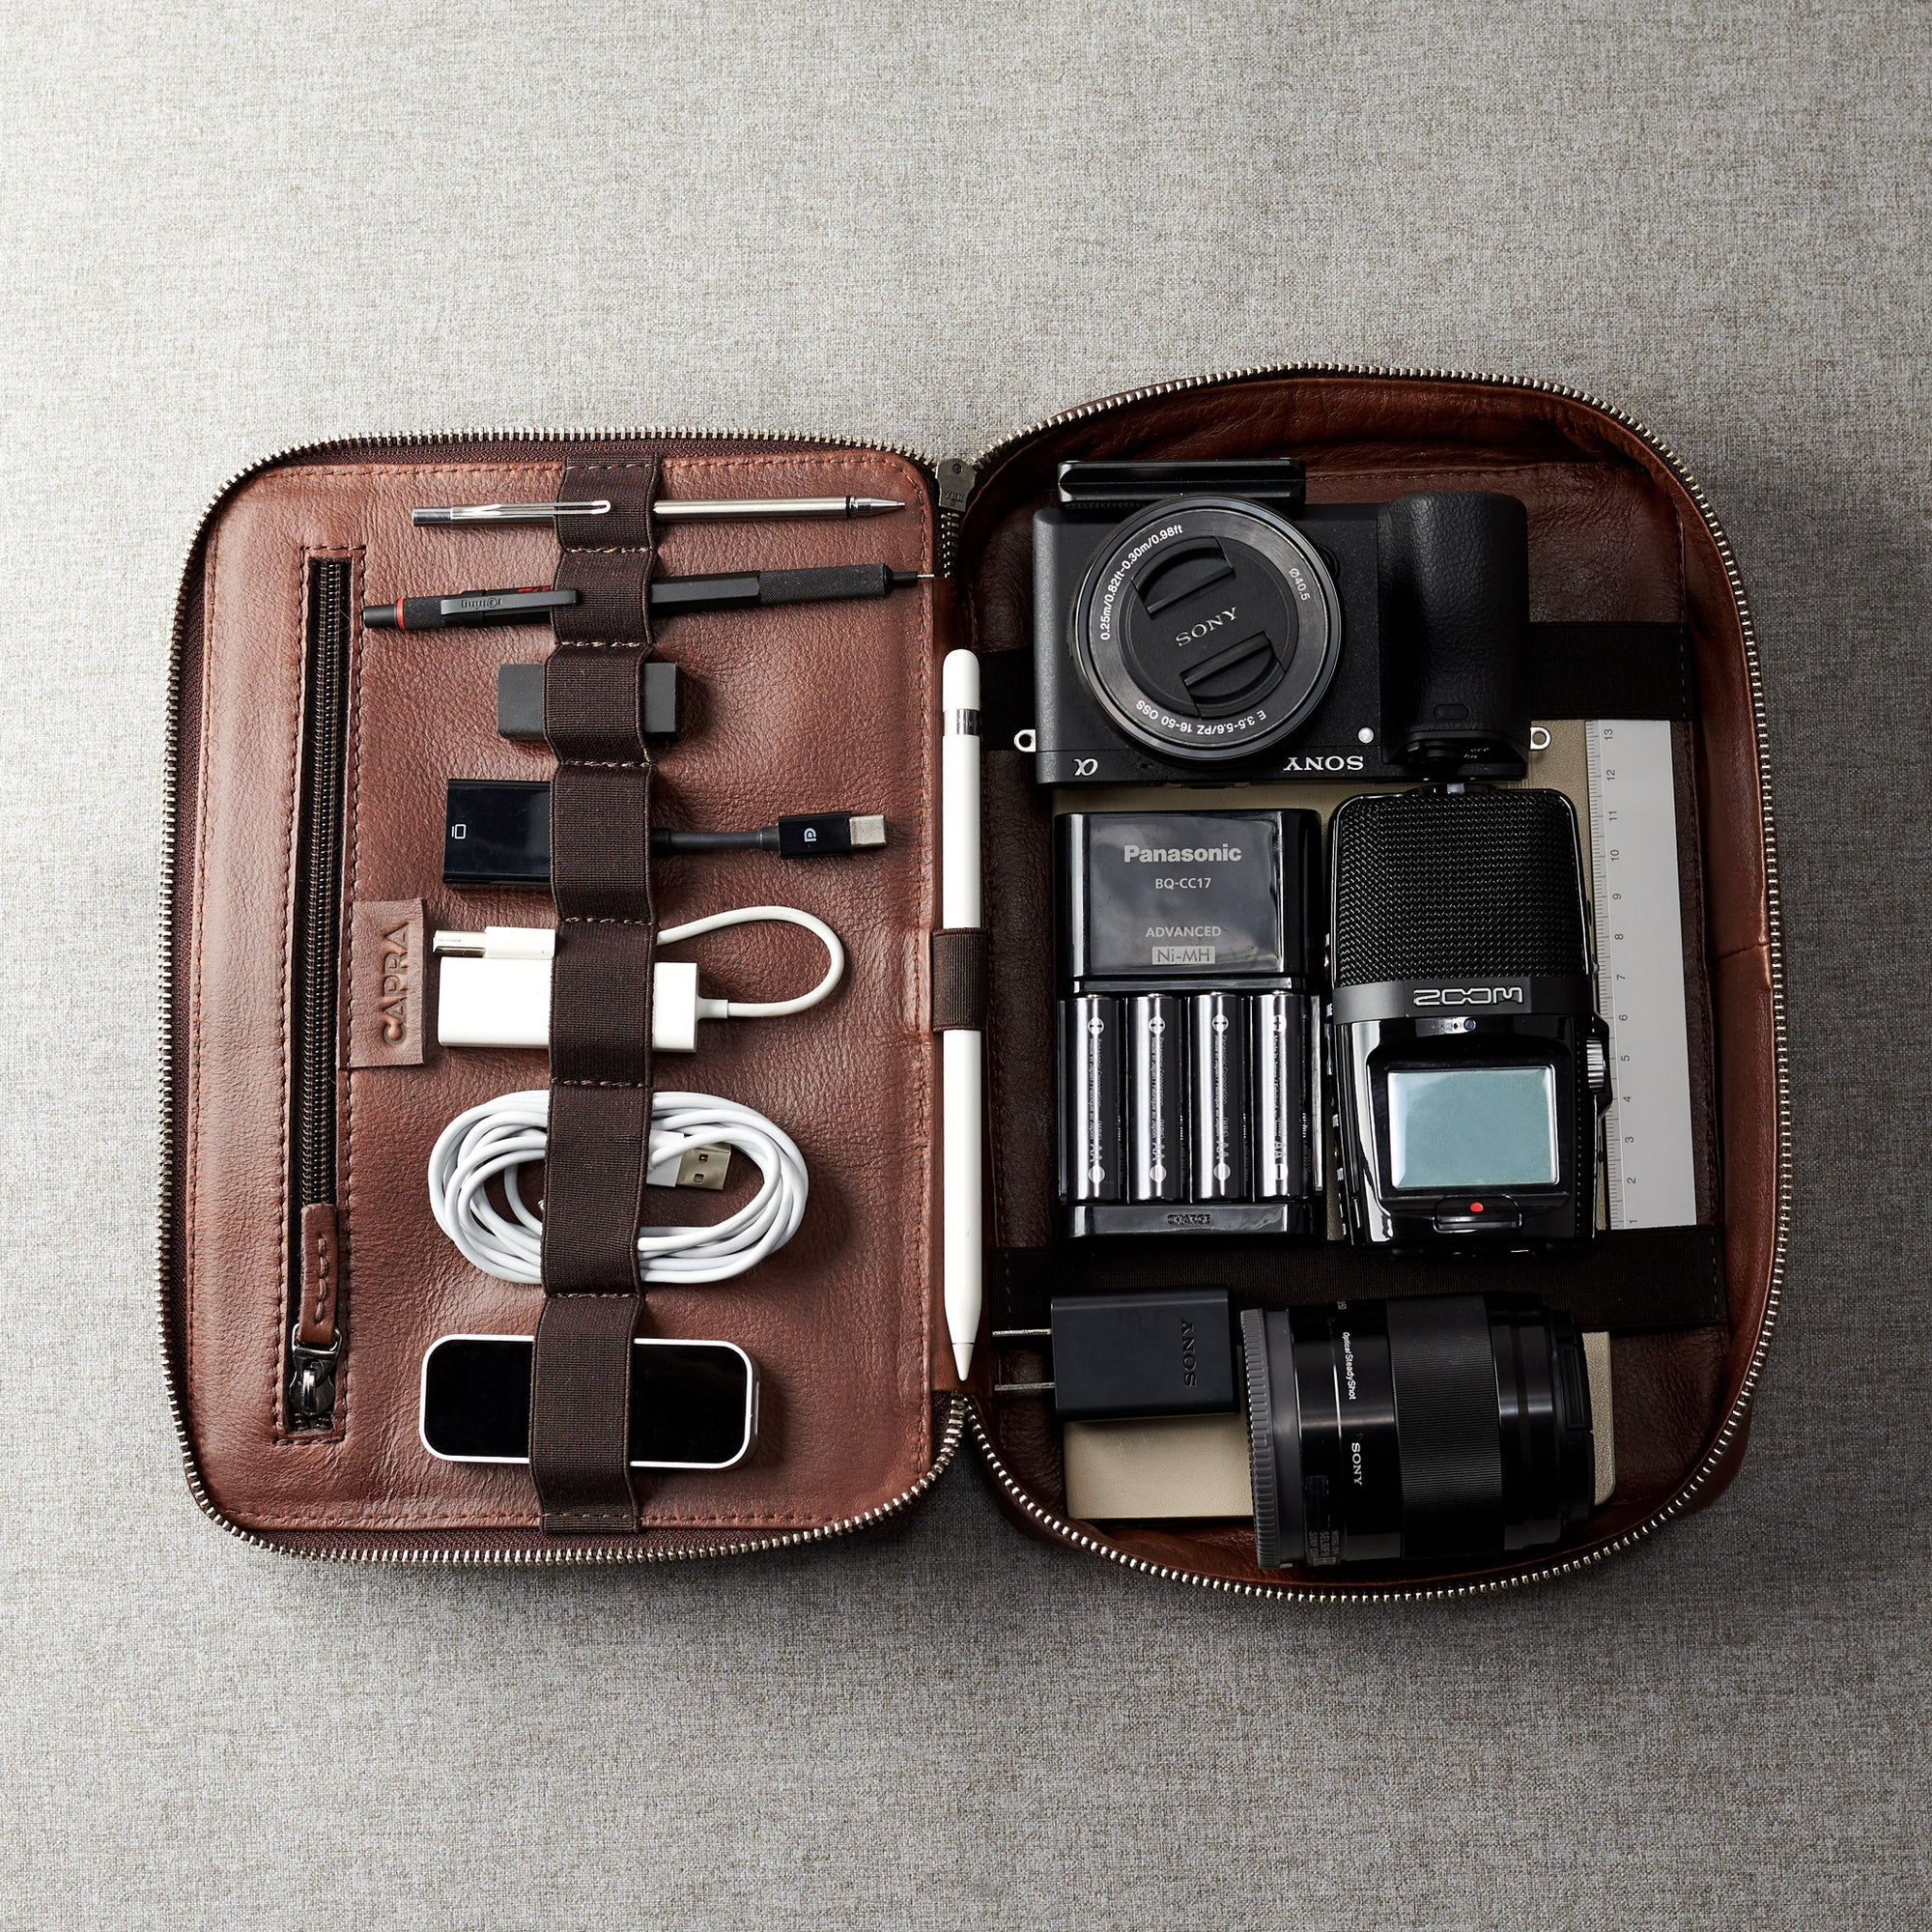 Leather Travel Gear Pouch Organizers for Men